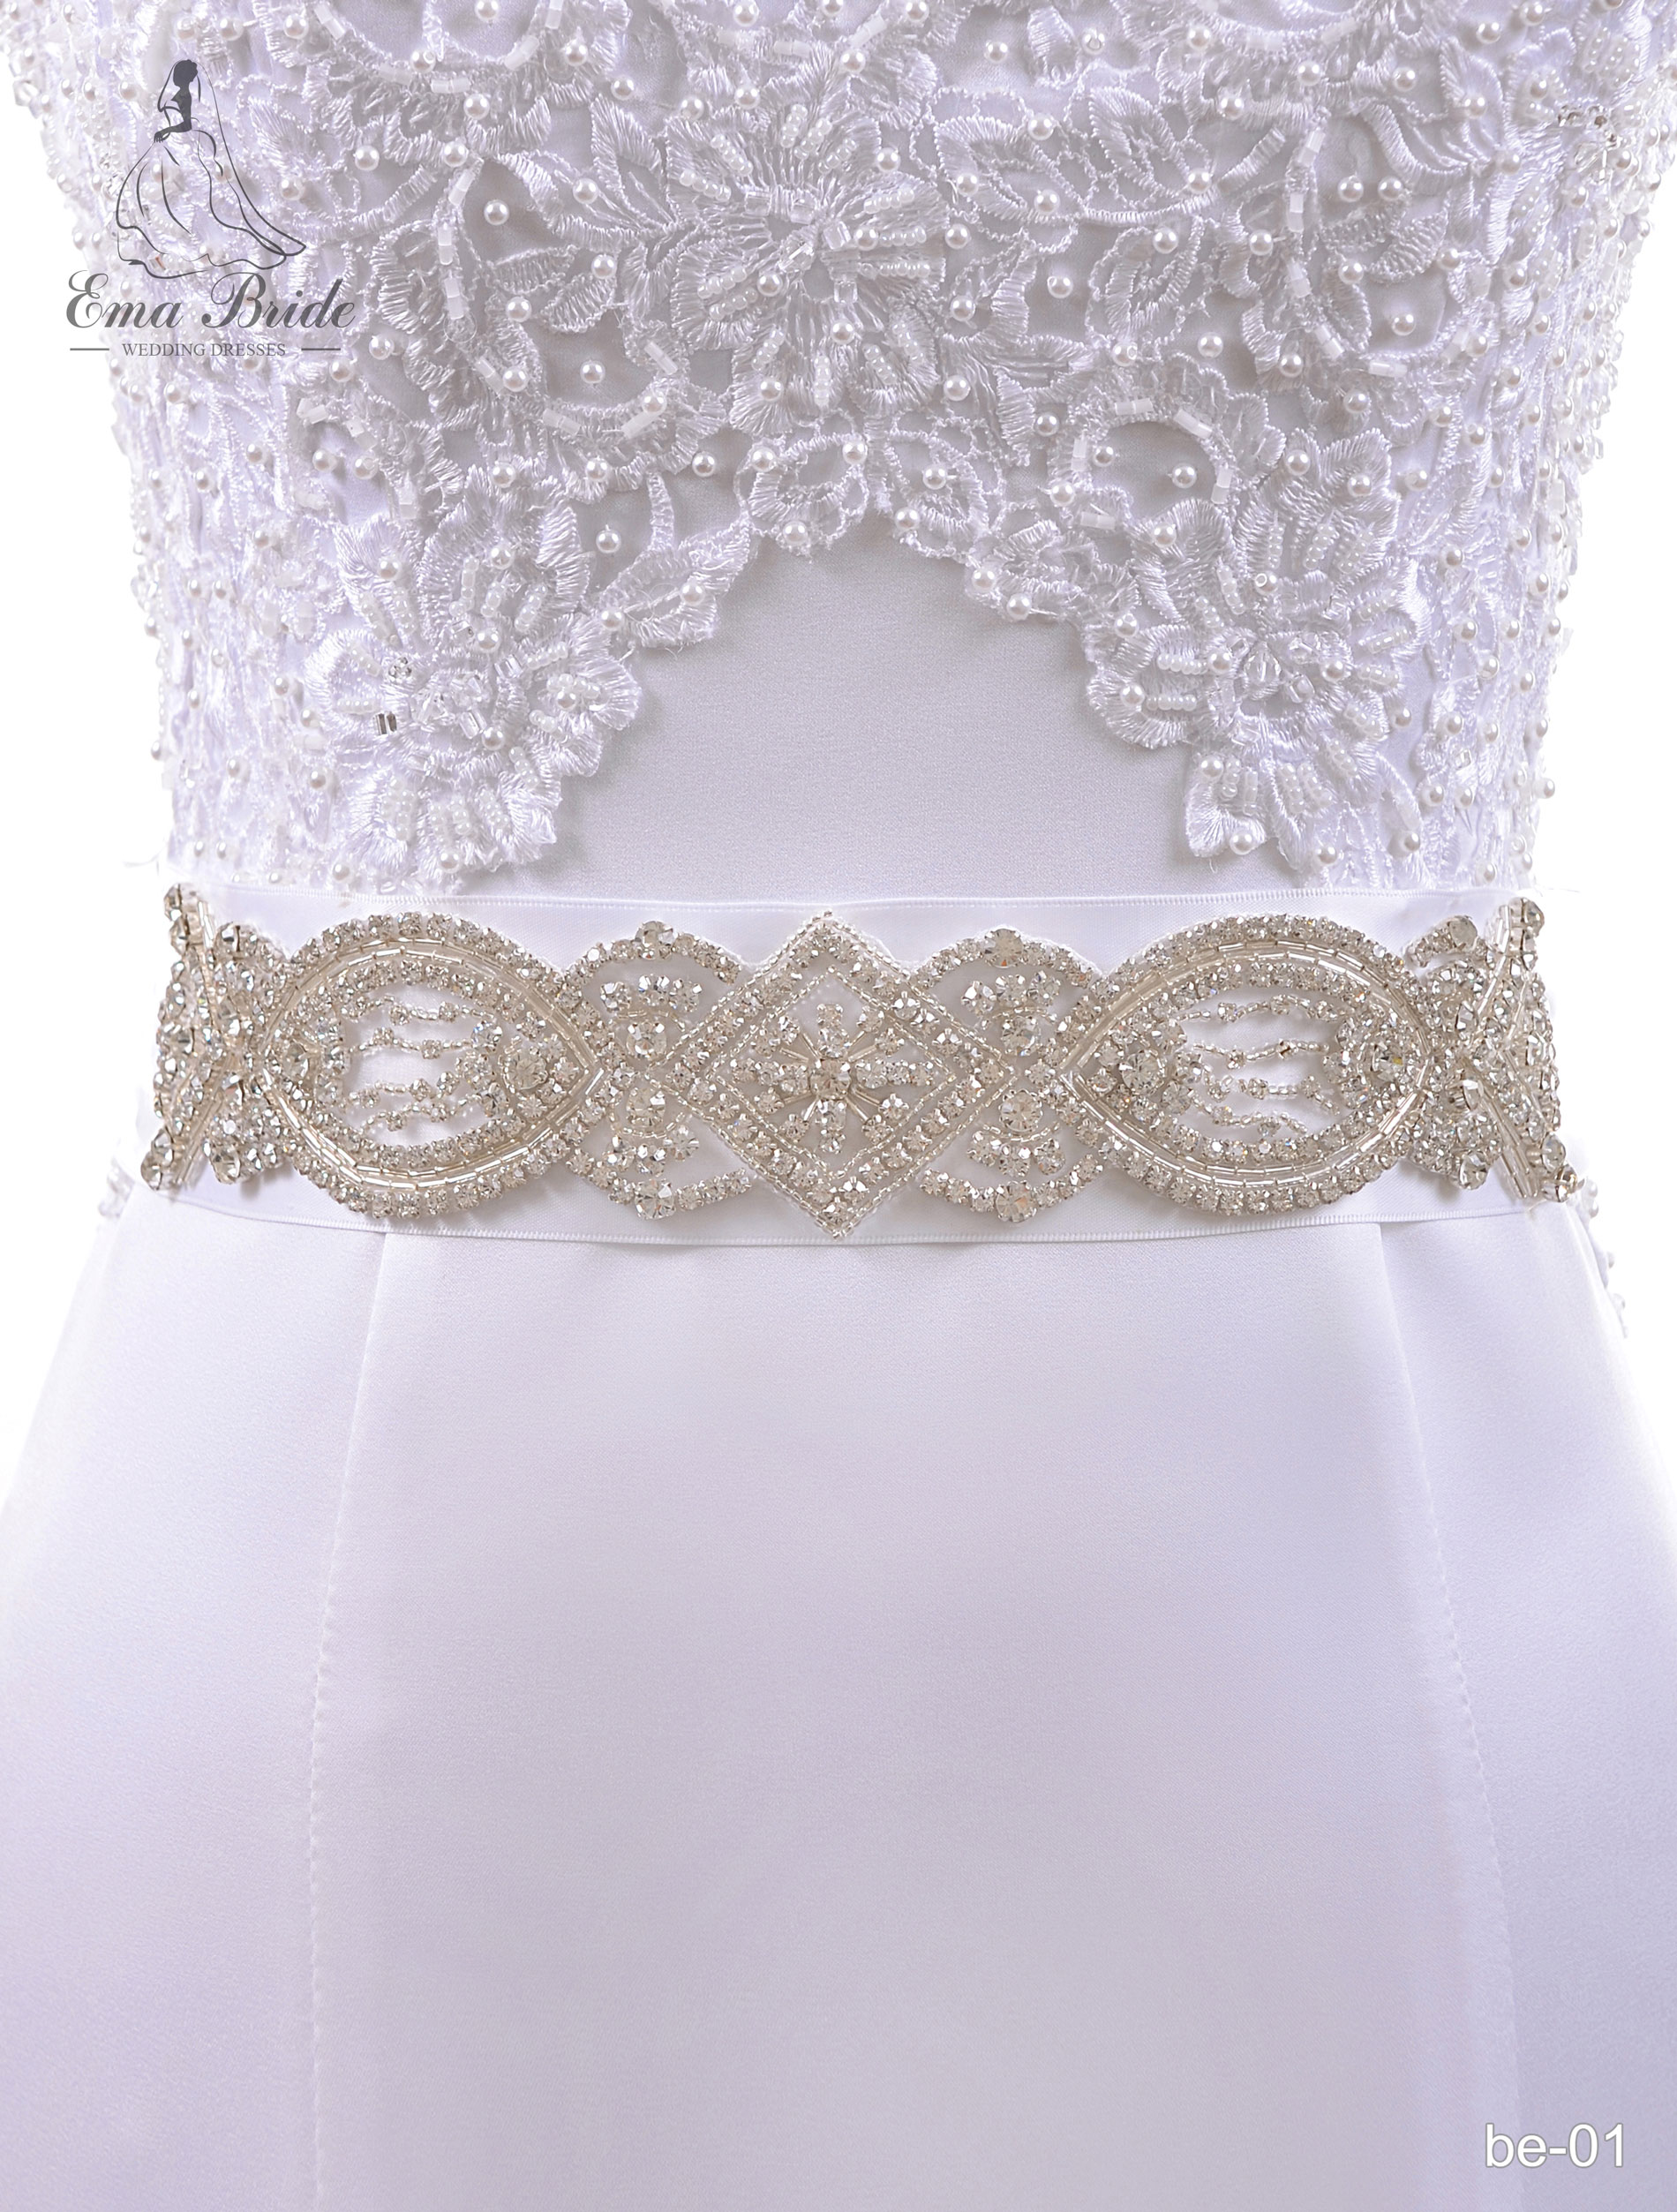 A belt for a wedding dress Be-01